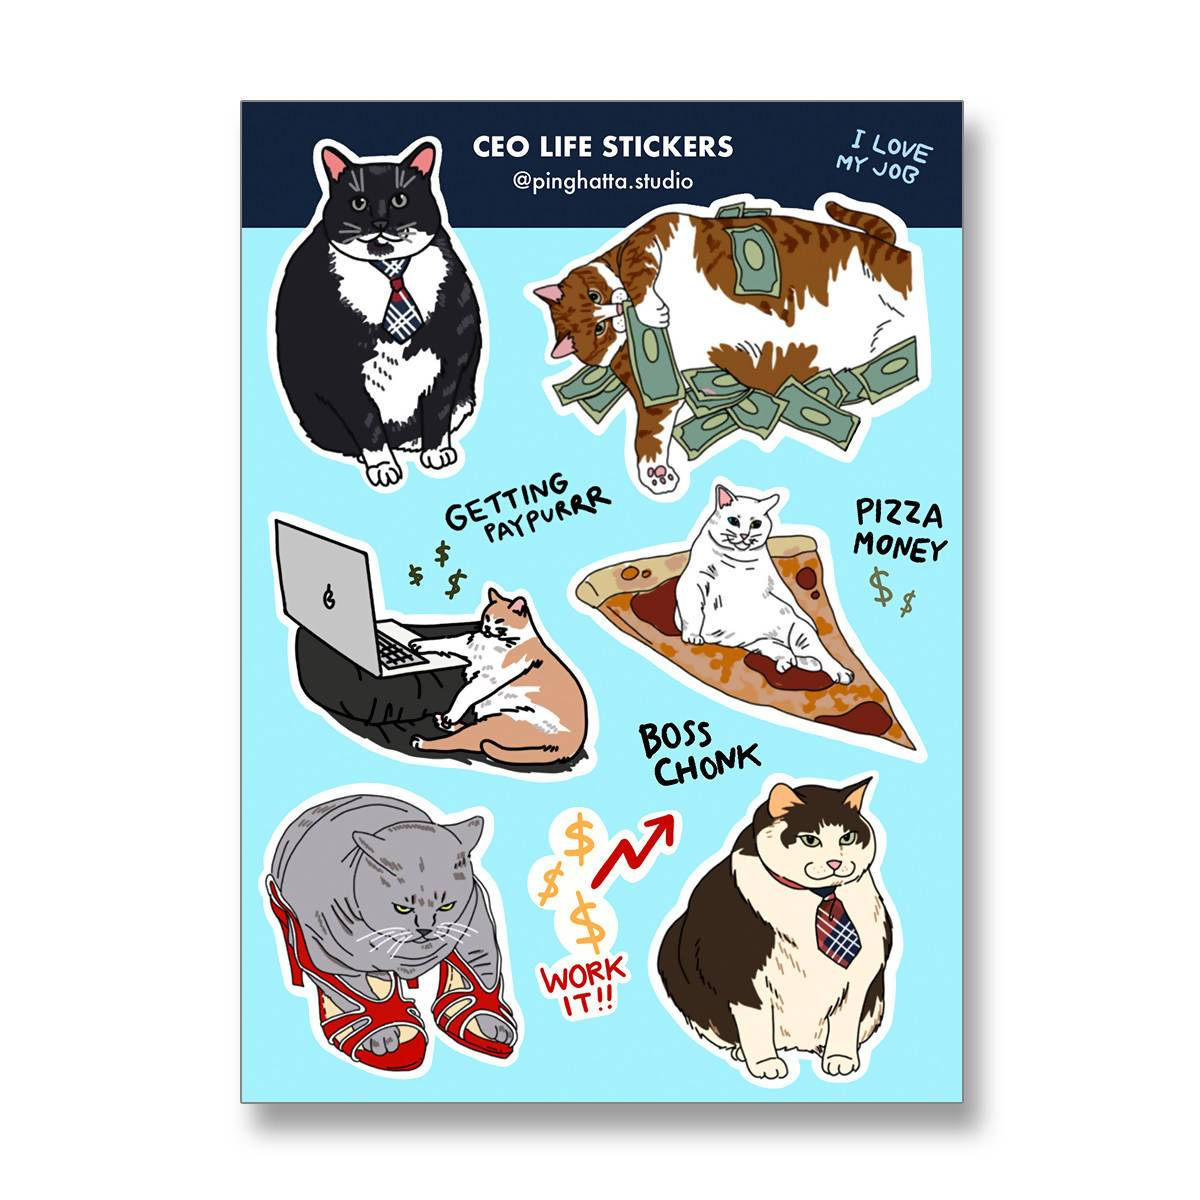 Cat Meme Funny Sticker Sheet - Stickers - Ping Hatta. Studio - Naiise